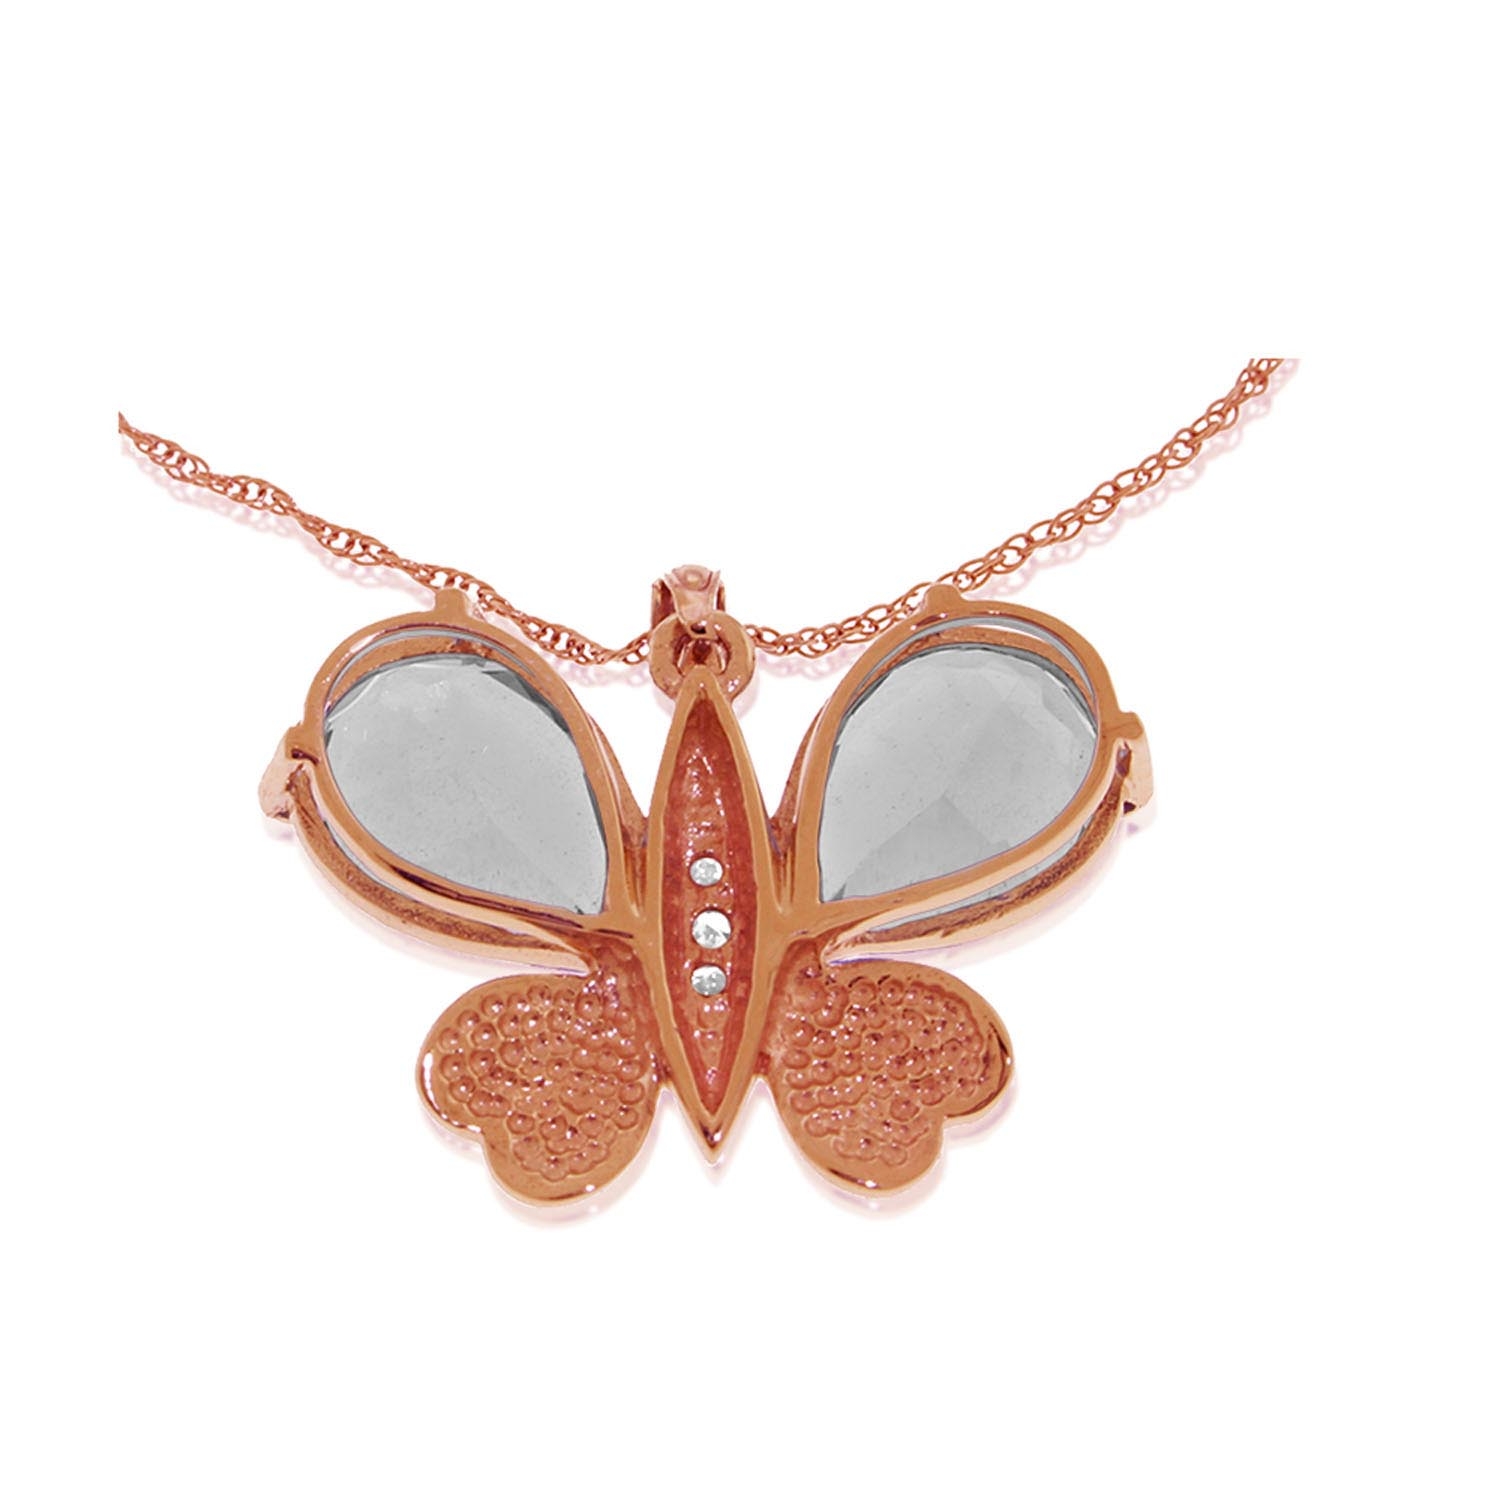 White Topaz and Diamond Butterfly Pendant Necklace 11.0ctw in 9ct Rose Gold